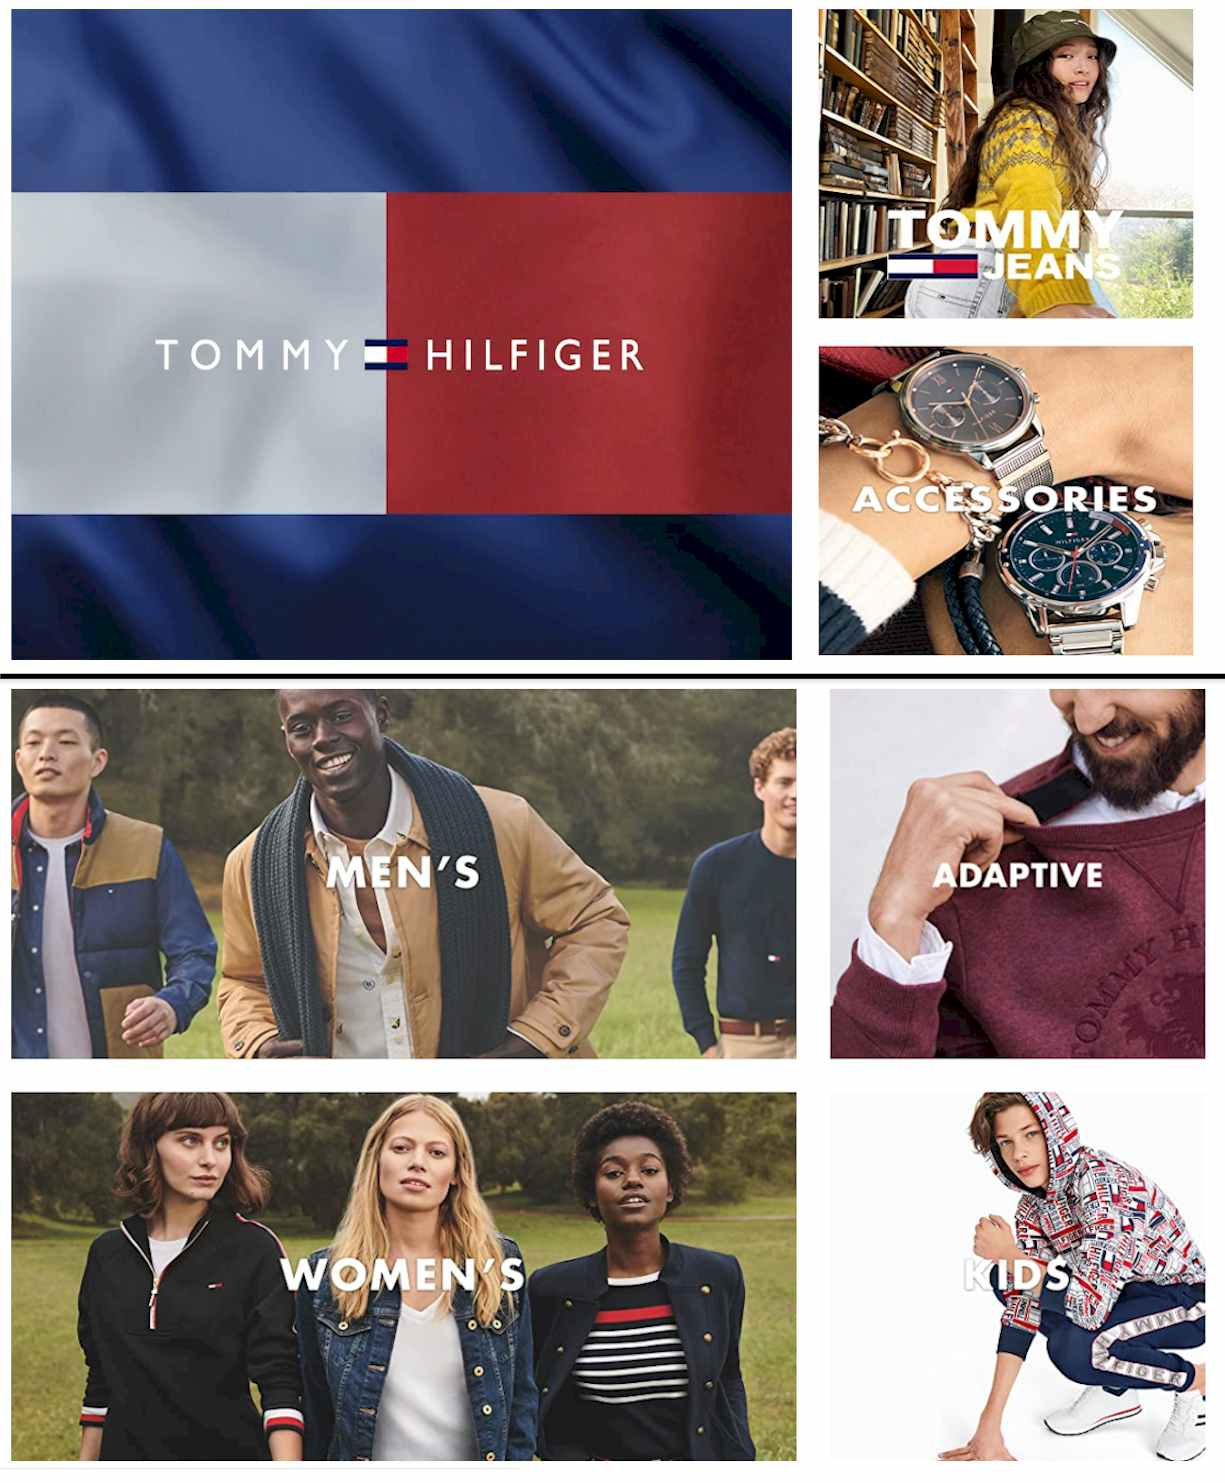 Tommy Hilfiger Store on Amazon -- Best Selling Products 2021